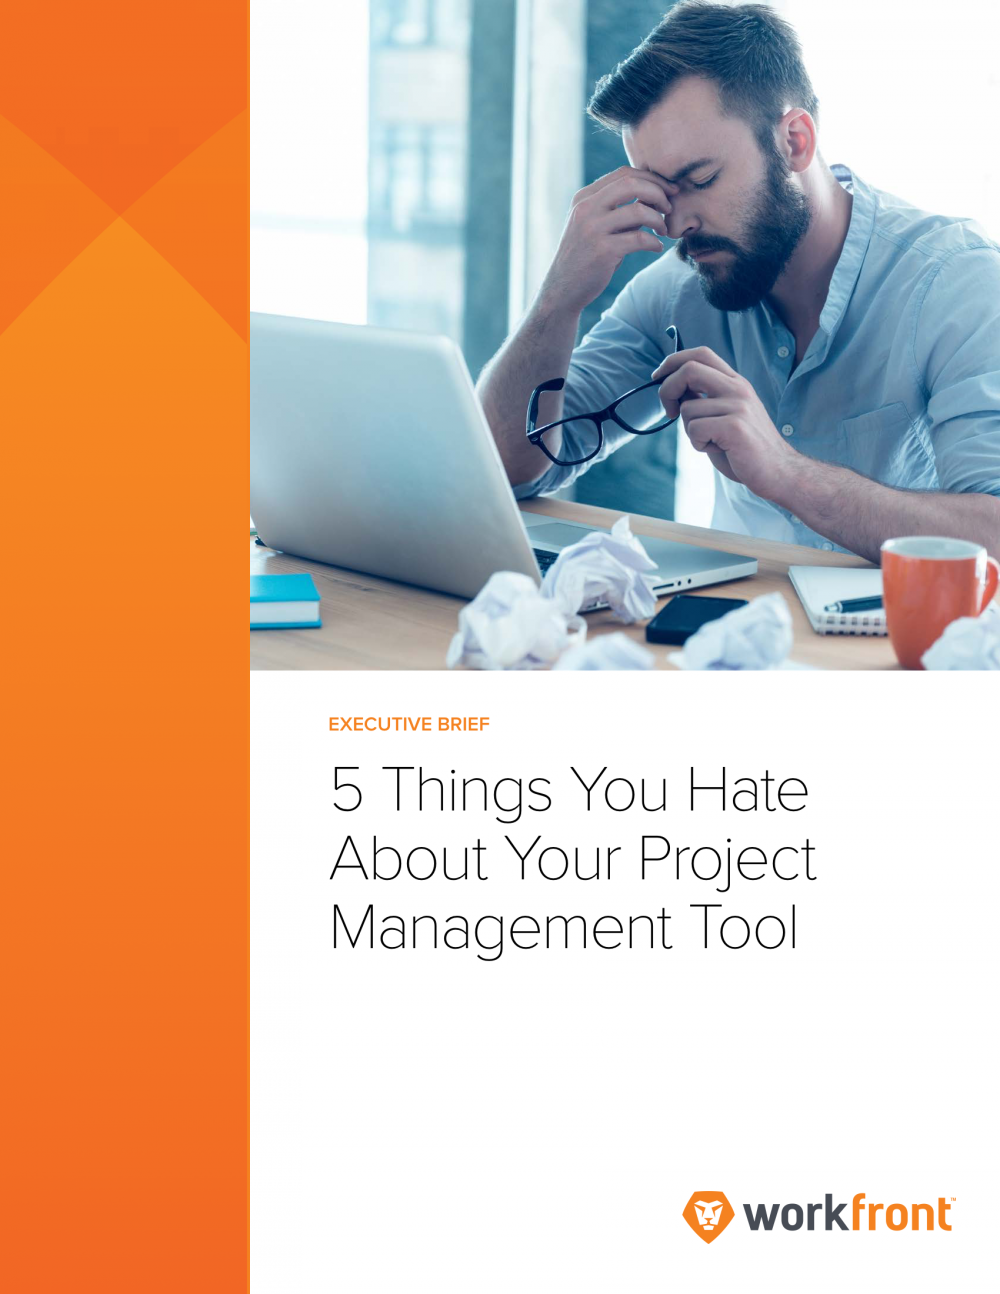 5 Things You Hate About Your Project Management Tool